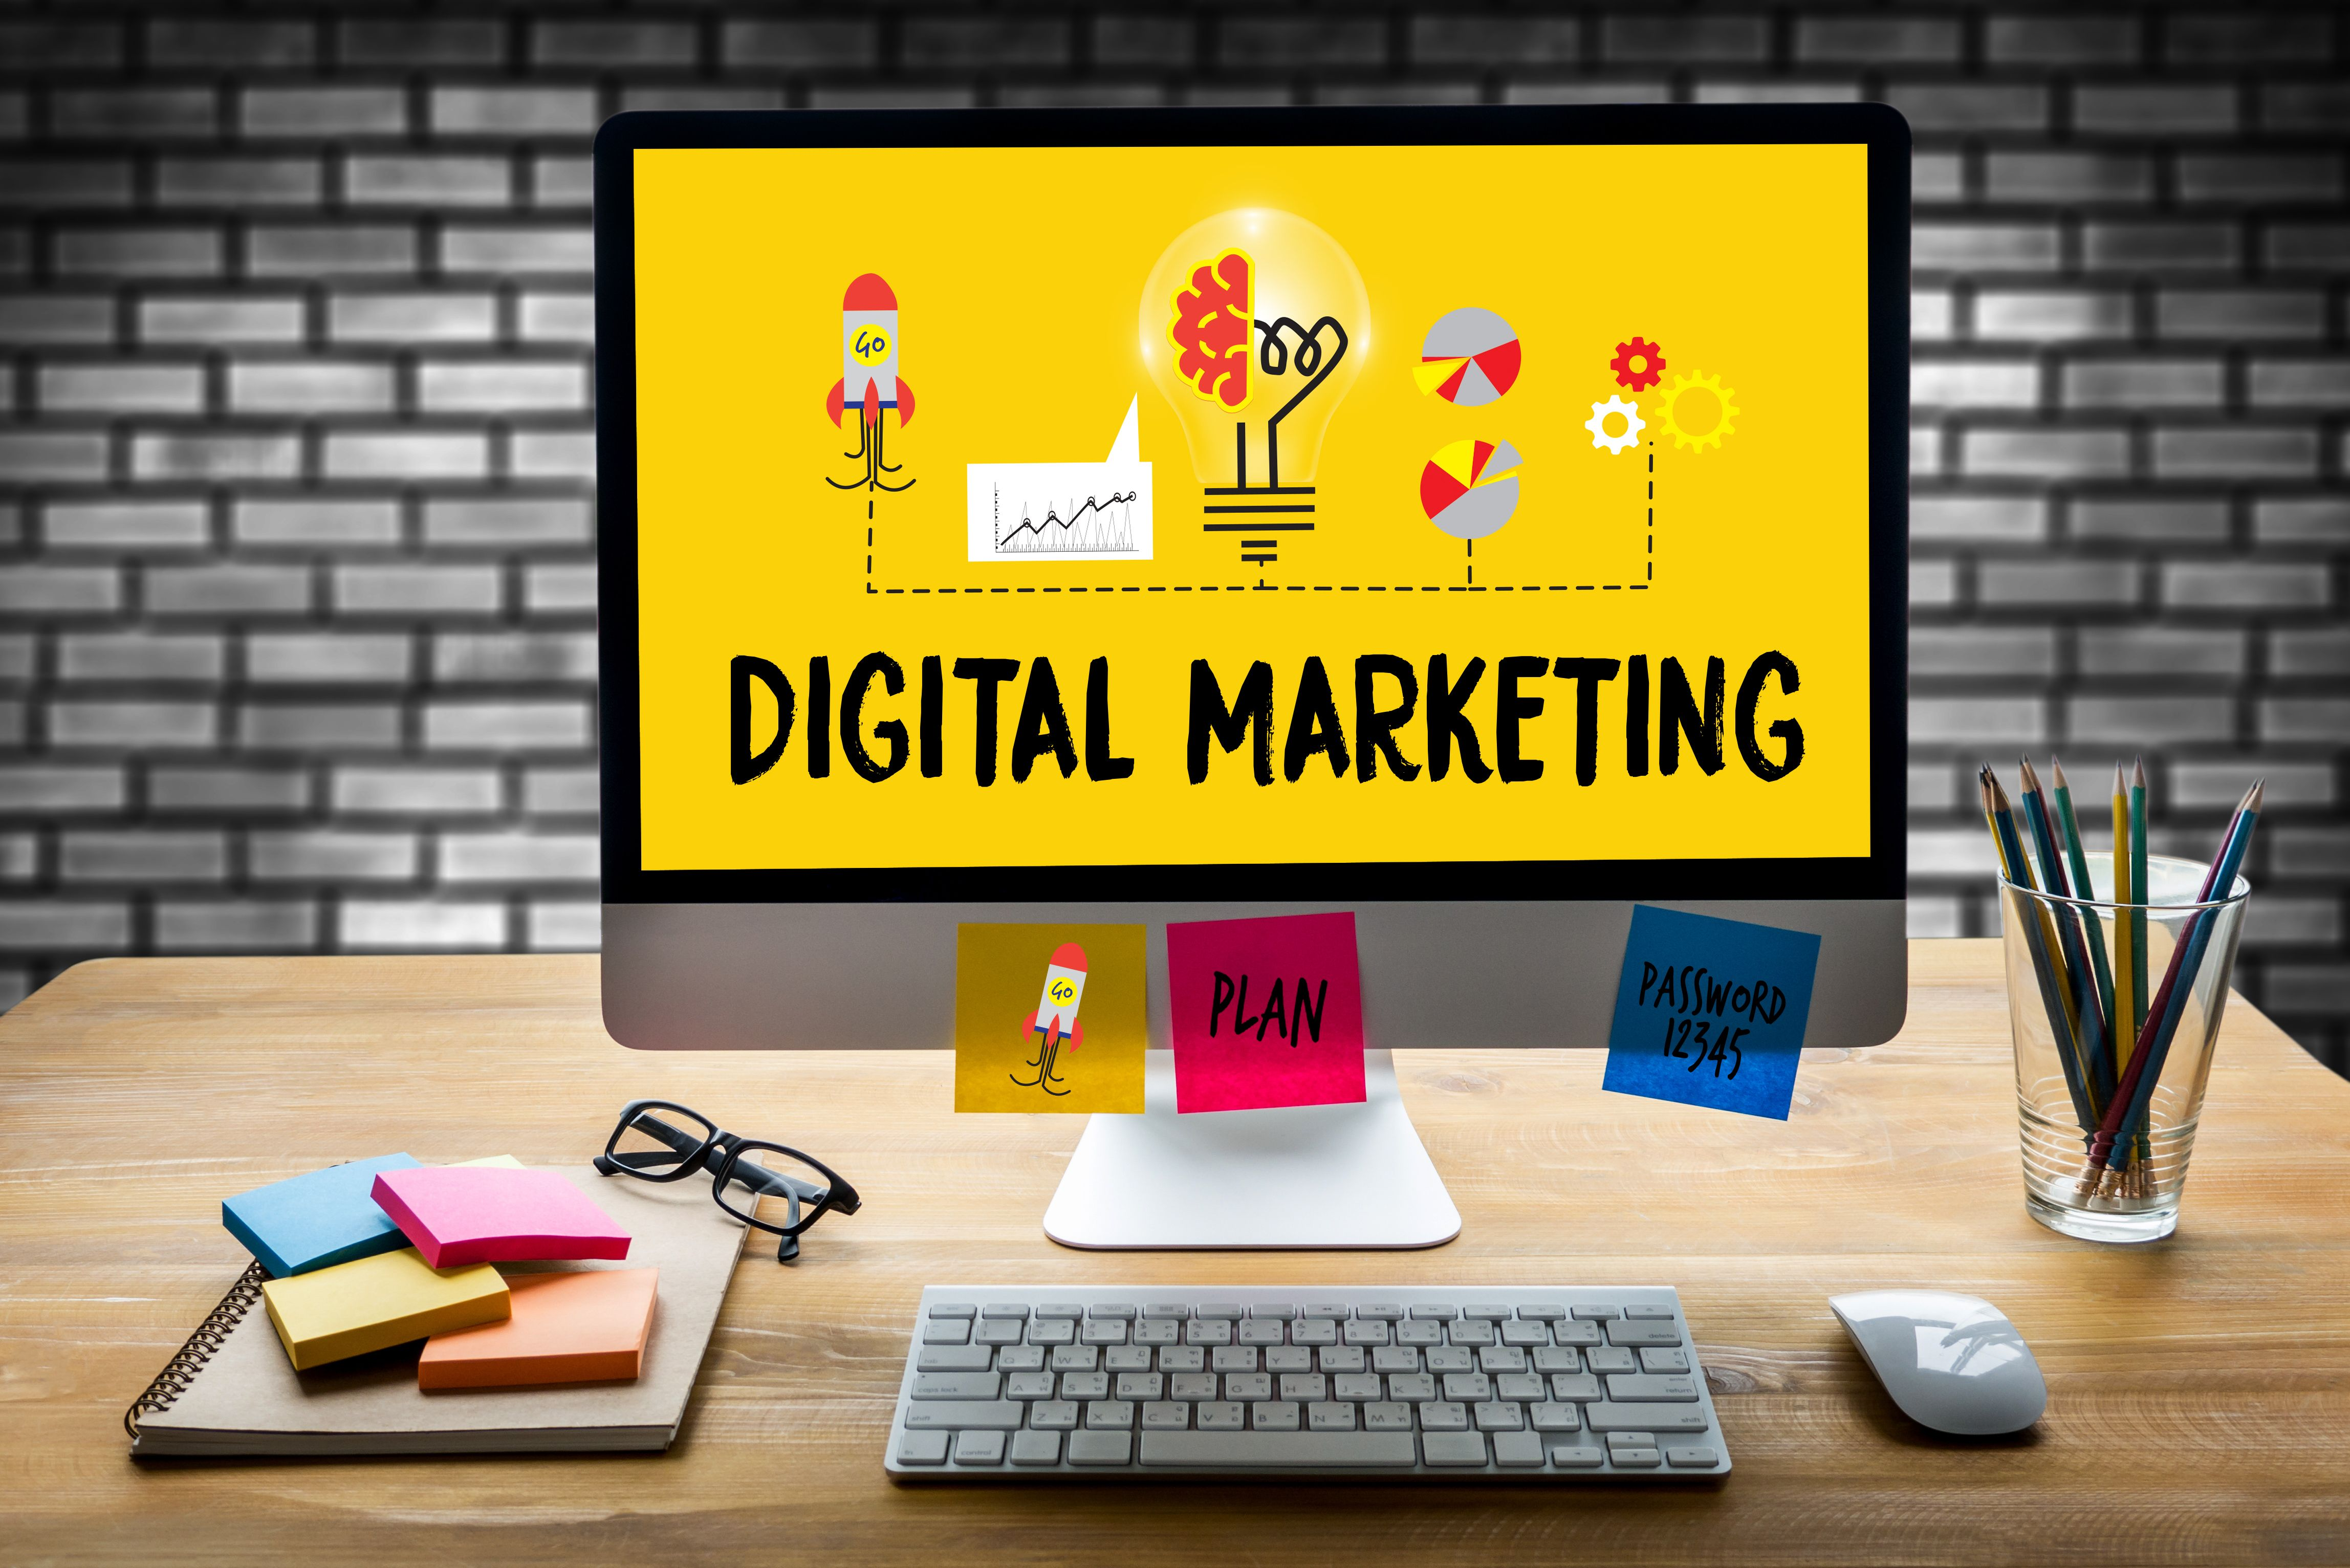 7-Mind-Blowing-Ways-Digital-Marketing-is-More-Refreshing-than-New-Socks-compressor